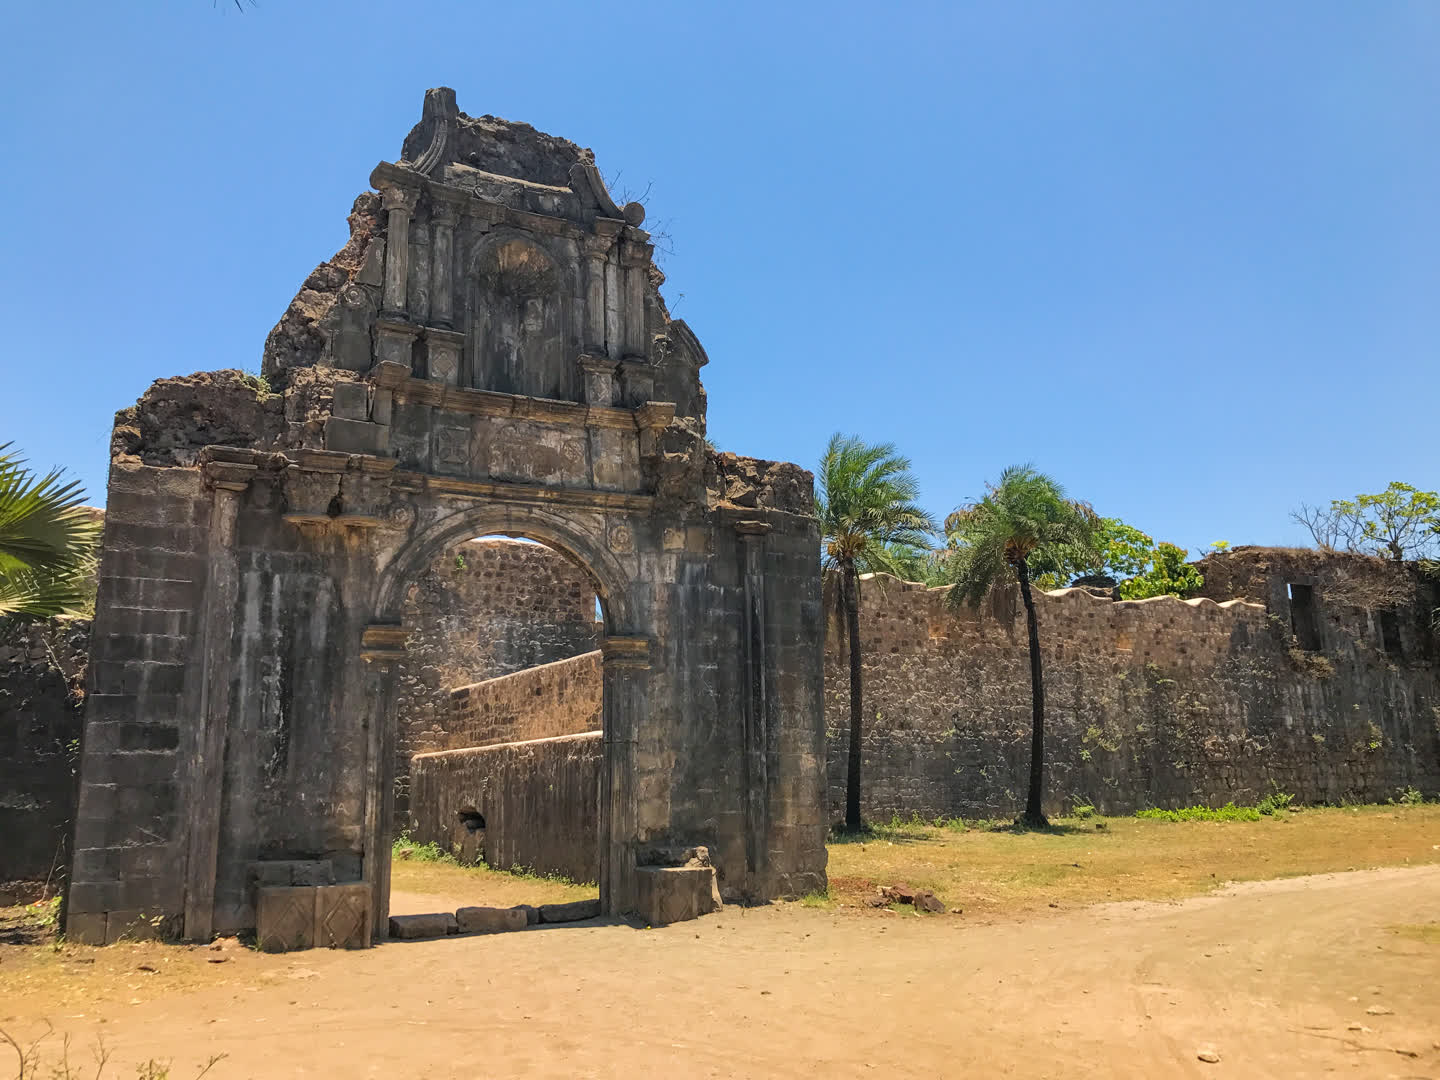 Vasai: A City Within a Fort